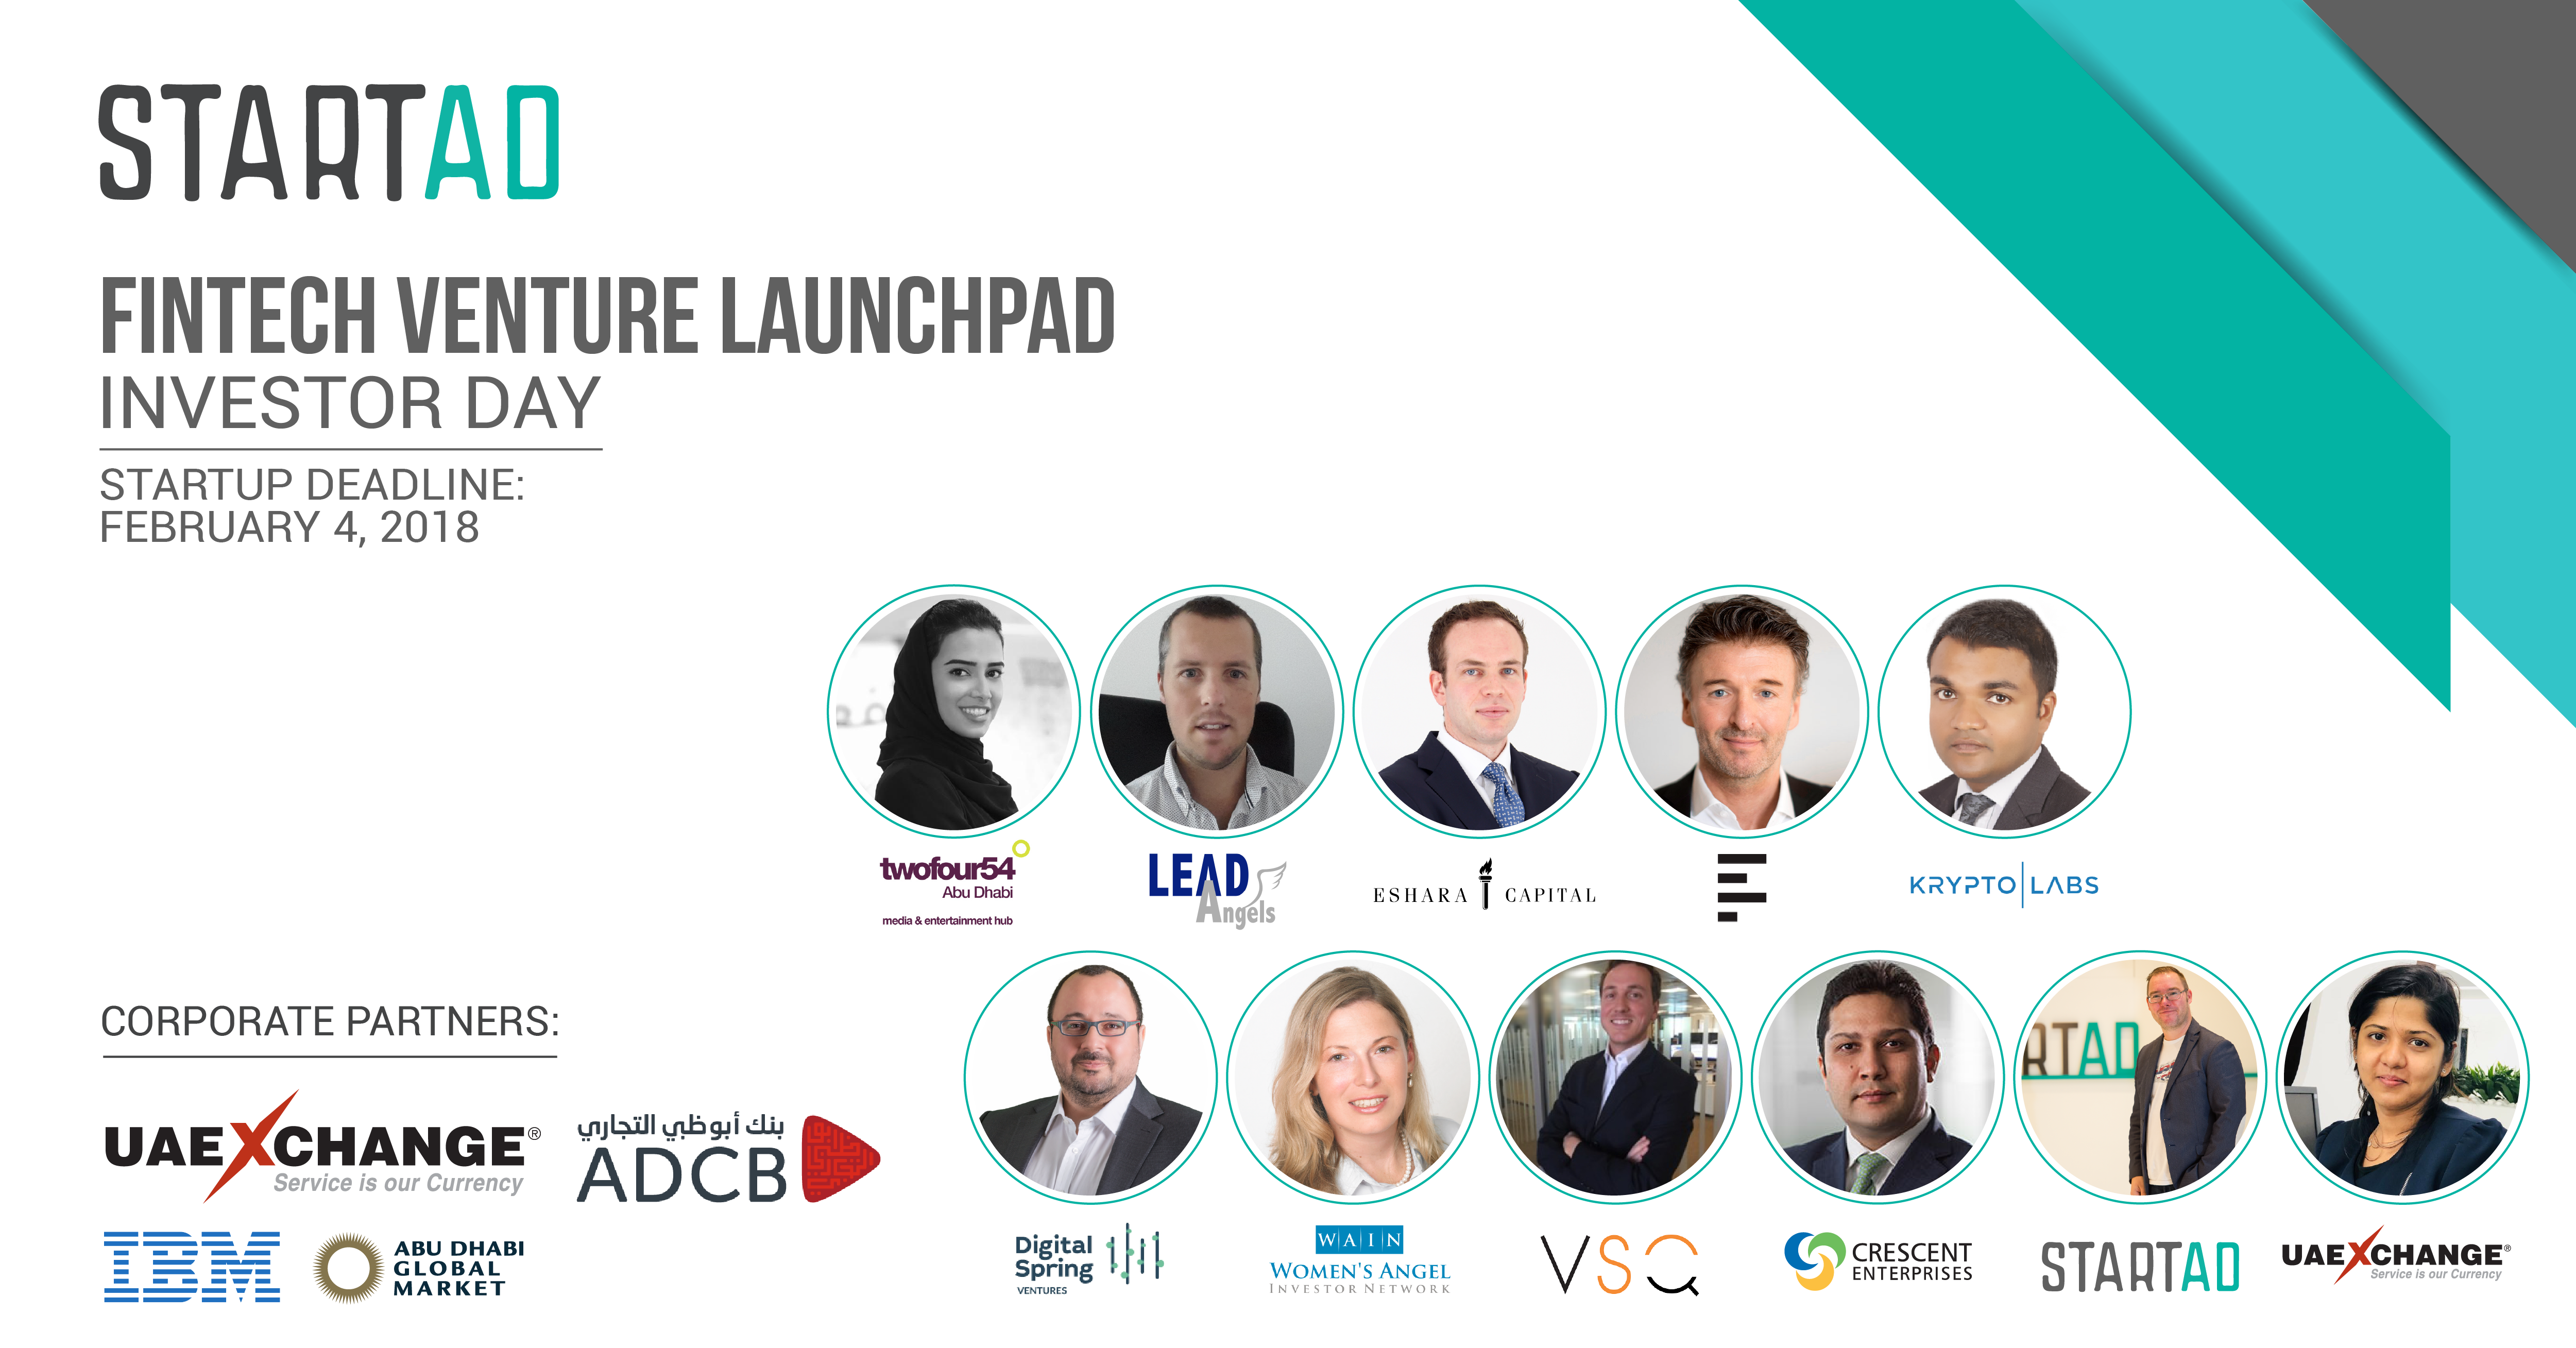 startAD Launches Investor Day for Fintech Venture Launchpad